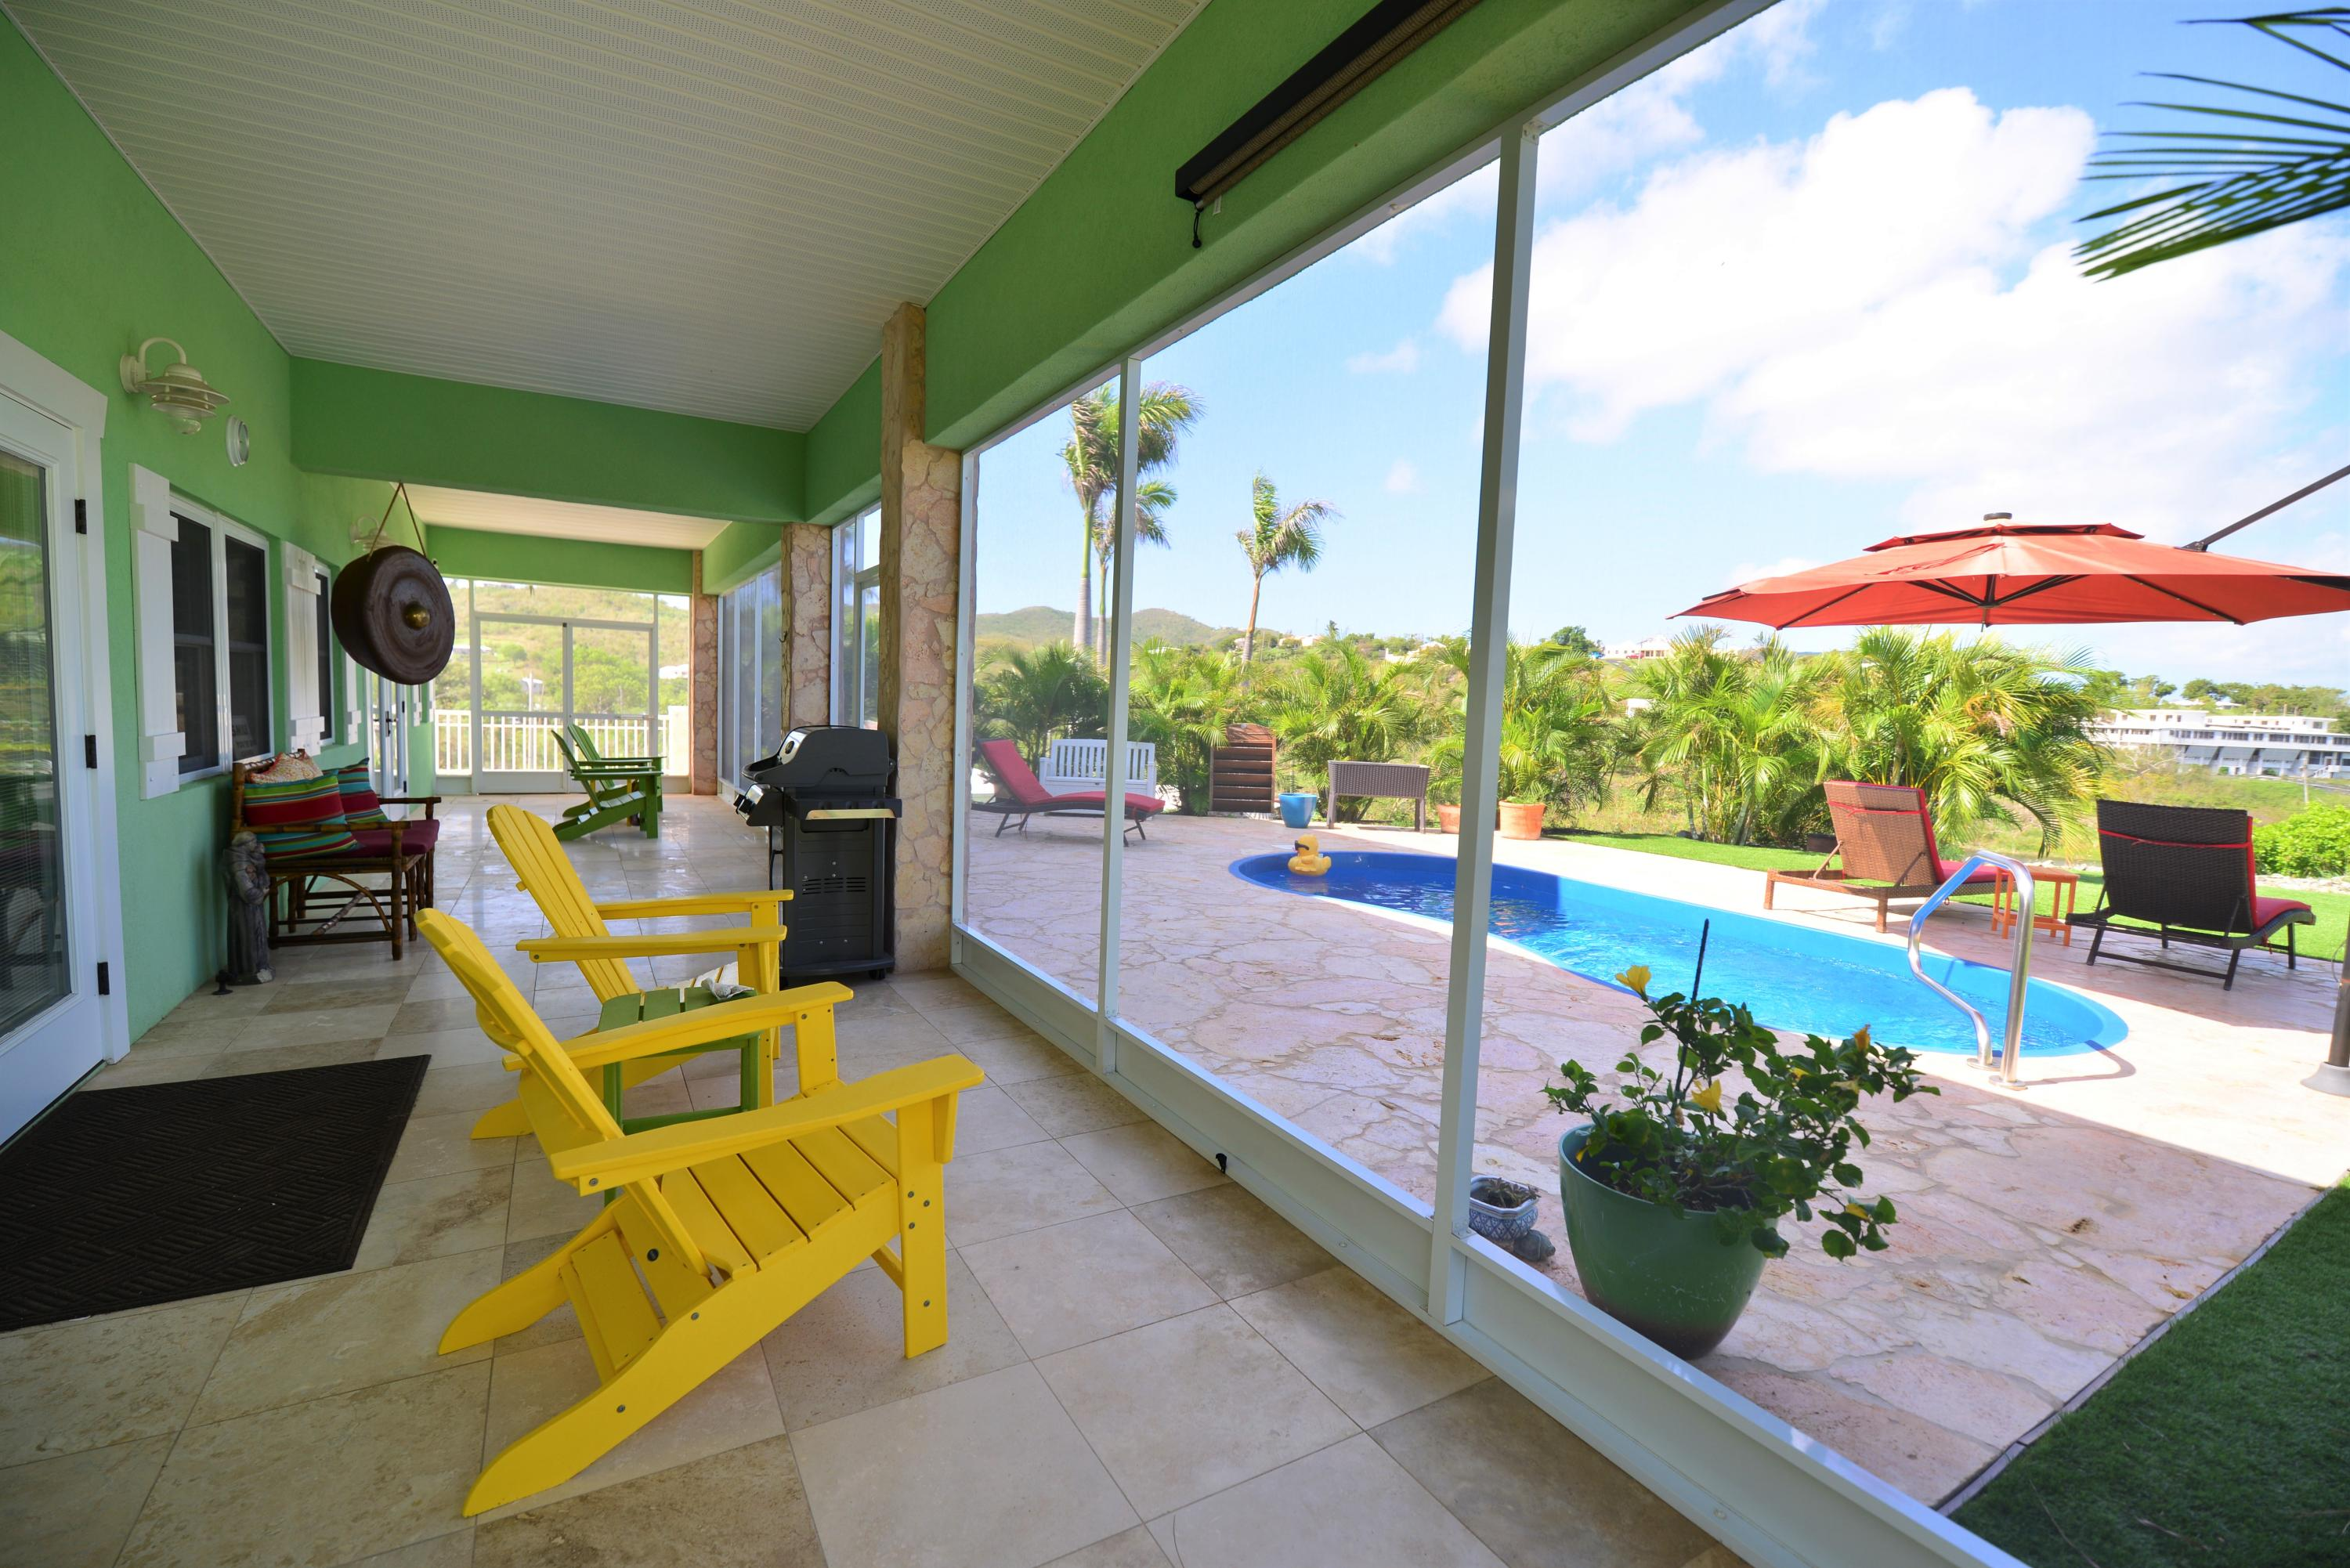 Screen porch 2 with pool view